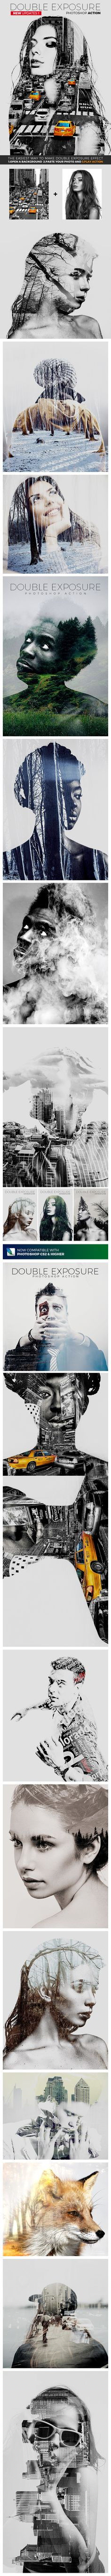 Double Exposure - Photoshop Action - Photo Effects Actions Works WithPSD, JPG Minimum Adobe CS VersionCS2 Tags:abstract, action, art, artwork, clean, color, dark, de, design, digitalart, double, double exposure, exposure, featured, future, light, lines, minimal, multi, multiple, trending, two